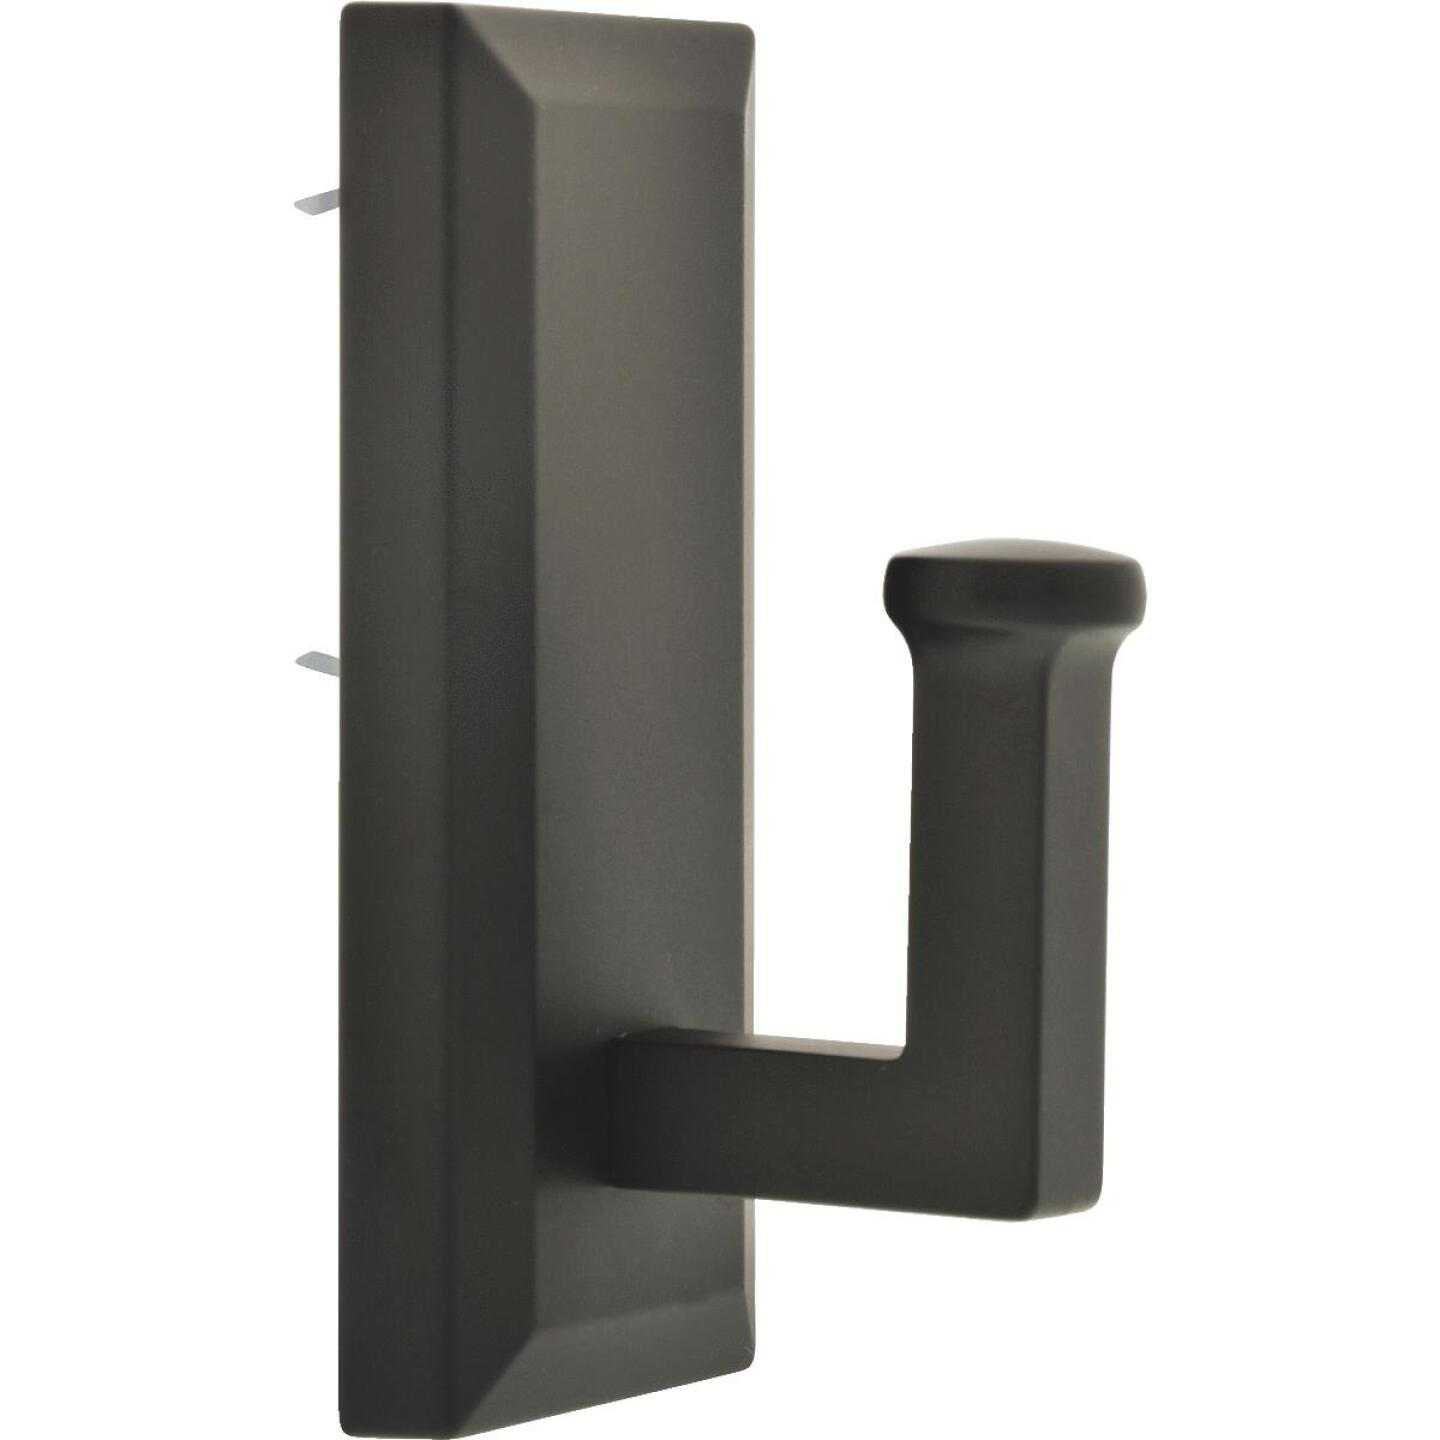 Hillman High and Mighty 25 Lb. Capacity Oil Rubbed Bronze Rectangular Decorative Hook Image 1